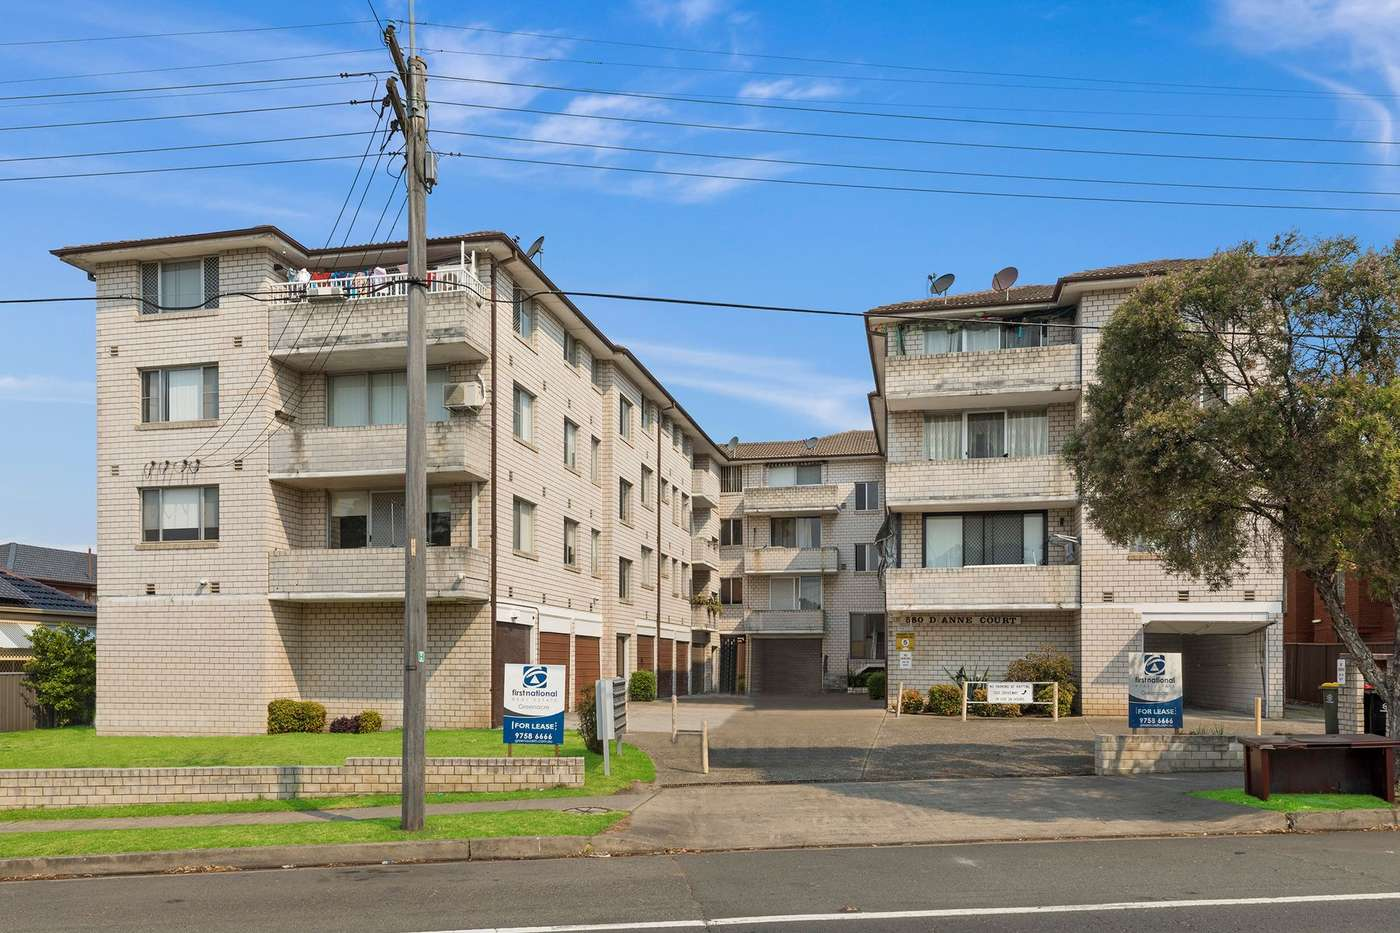 Main view of Homely apartment listing, 9/580 Punchbowl Road, Lakemba, NSW 2195